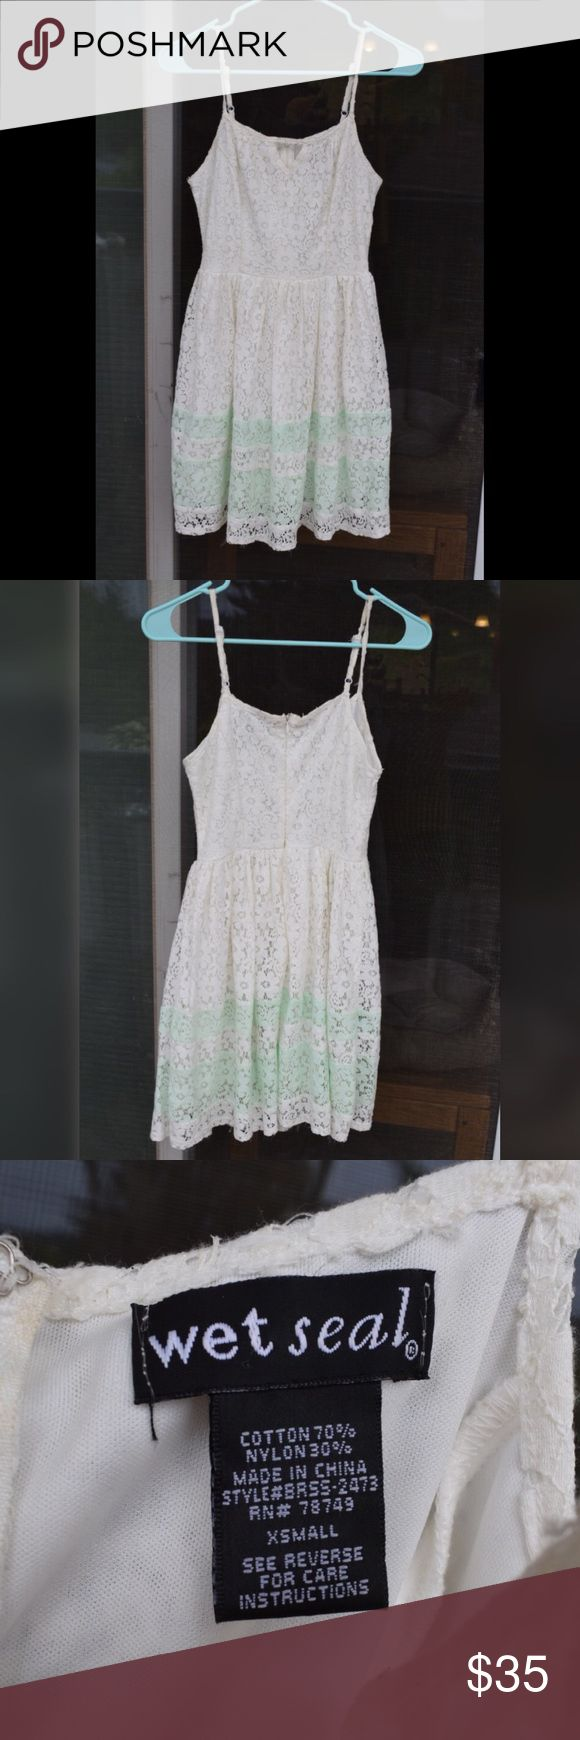 👗👒🌸Adorable lace & white mint dress Lace white dress with mint colored stripes. Comfortable and cute Wet Seal Dresses